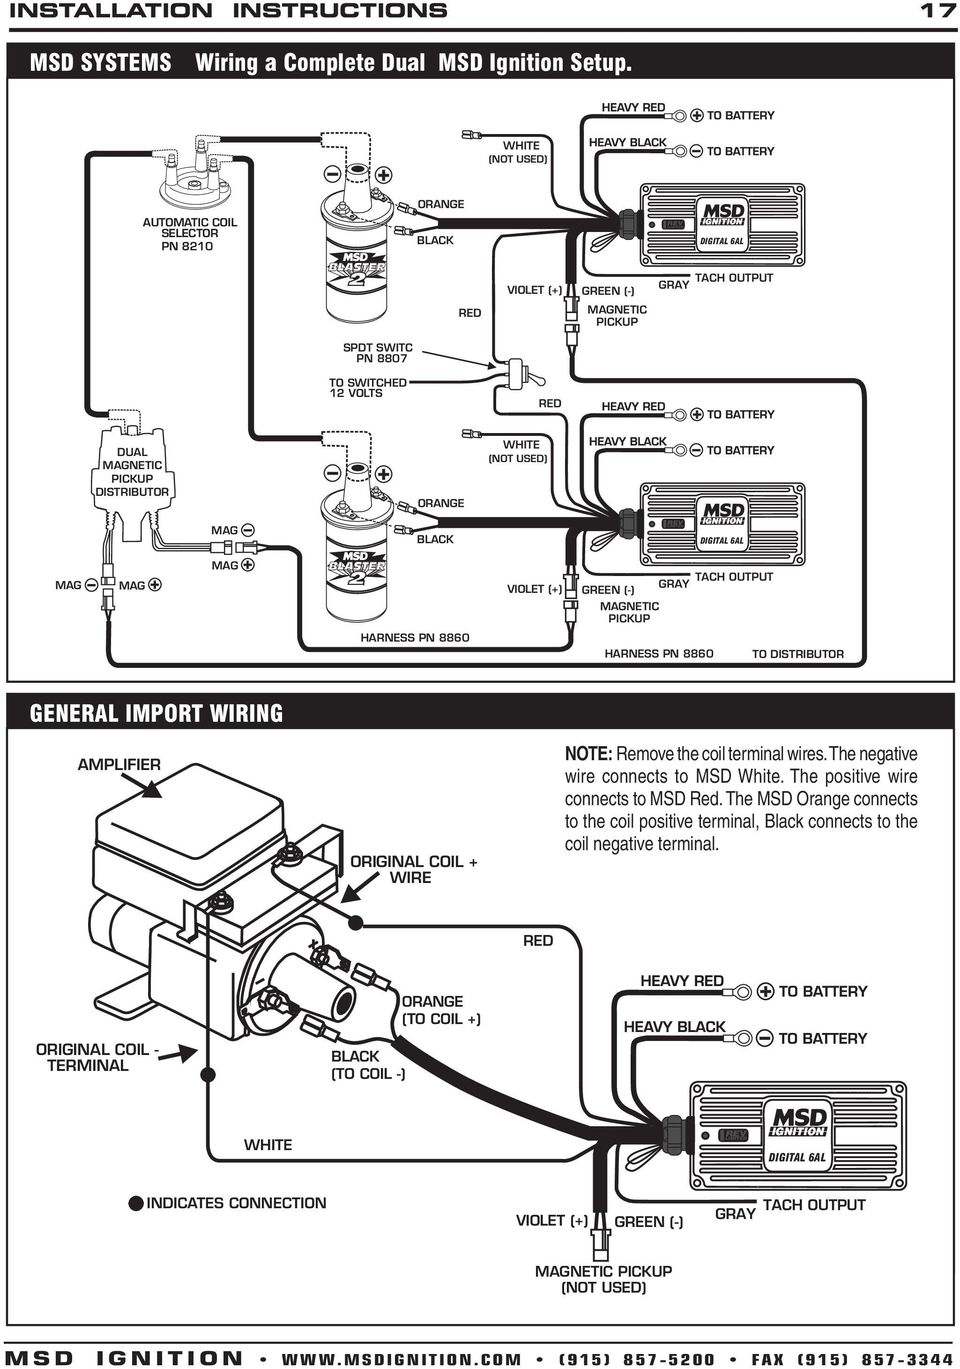 Msd Coil Tach Wiring Diagrams 6al Diagram Digital 6a And Ignition Control Pn 6201 81 Vette